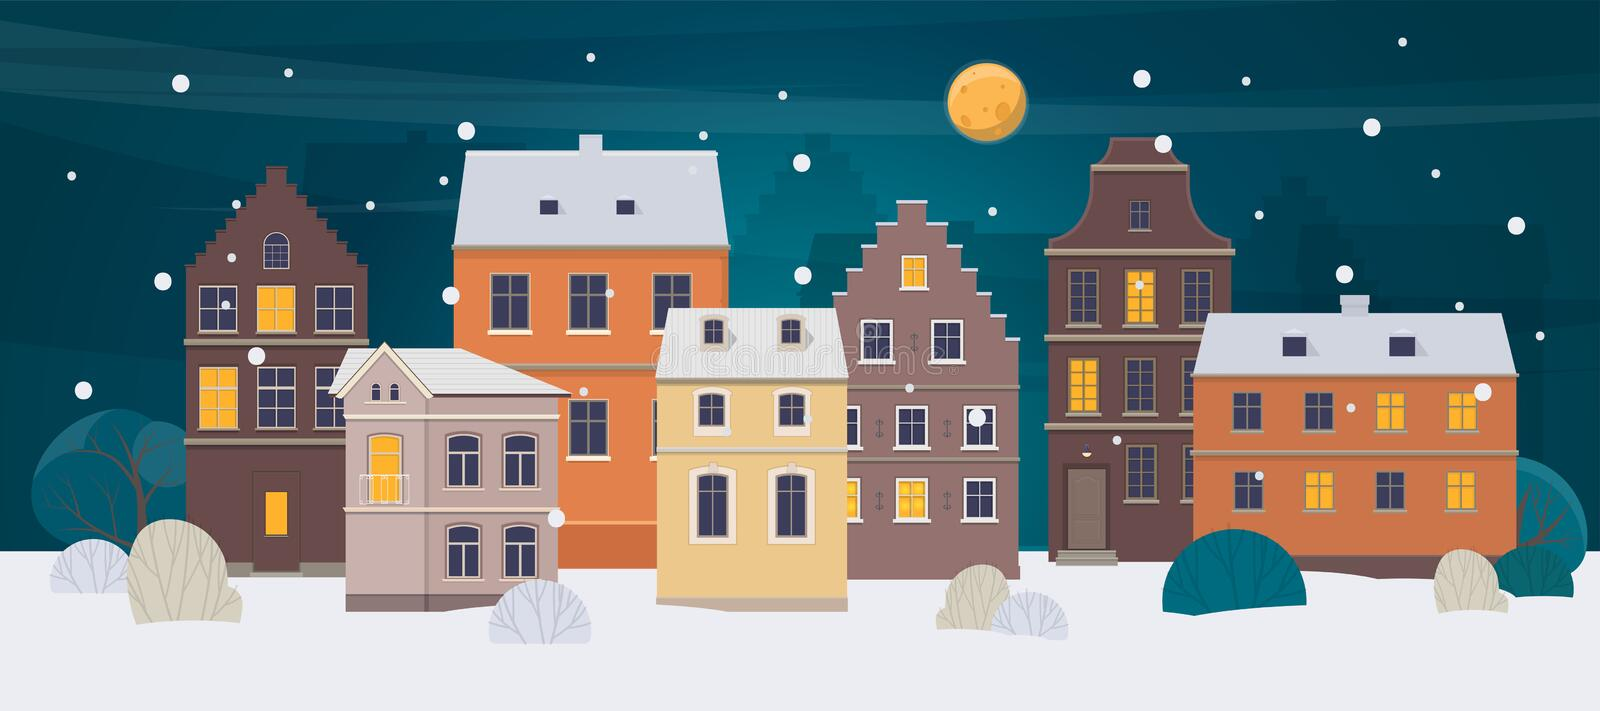 Winter city landscape. Old town with different houses at night. Vector illustration royalty free illustration